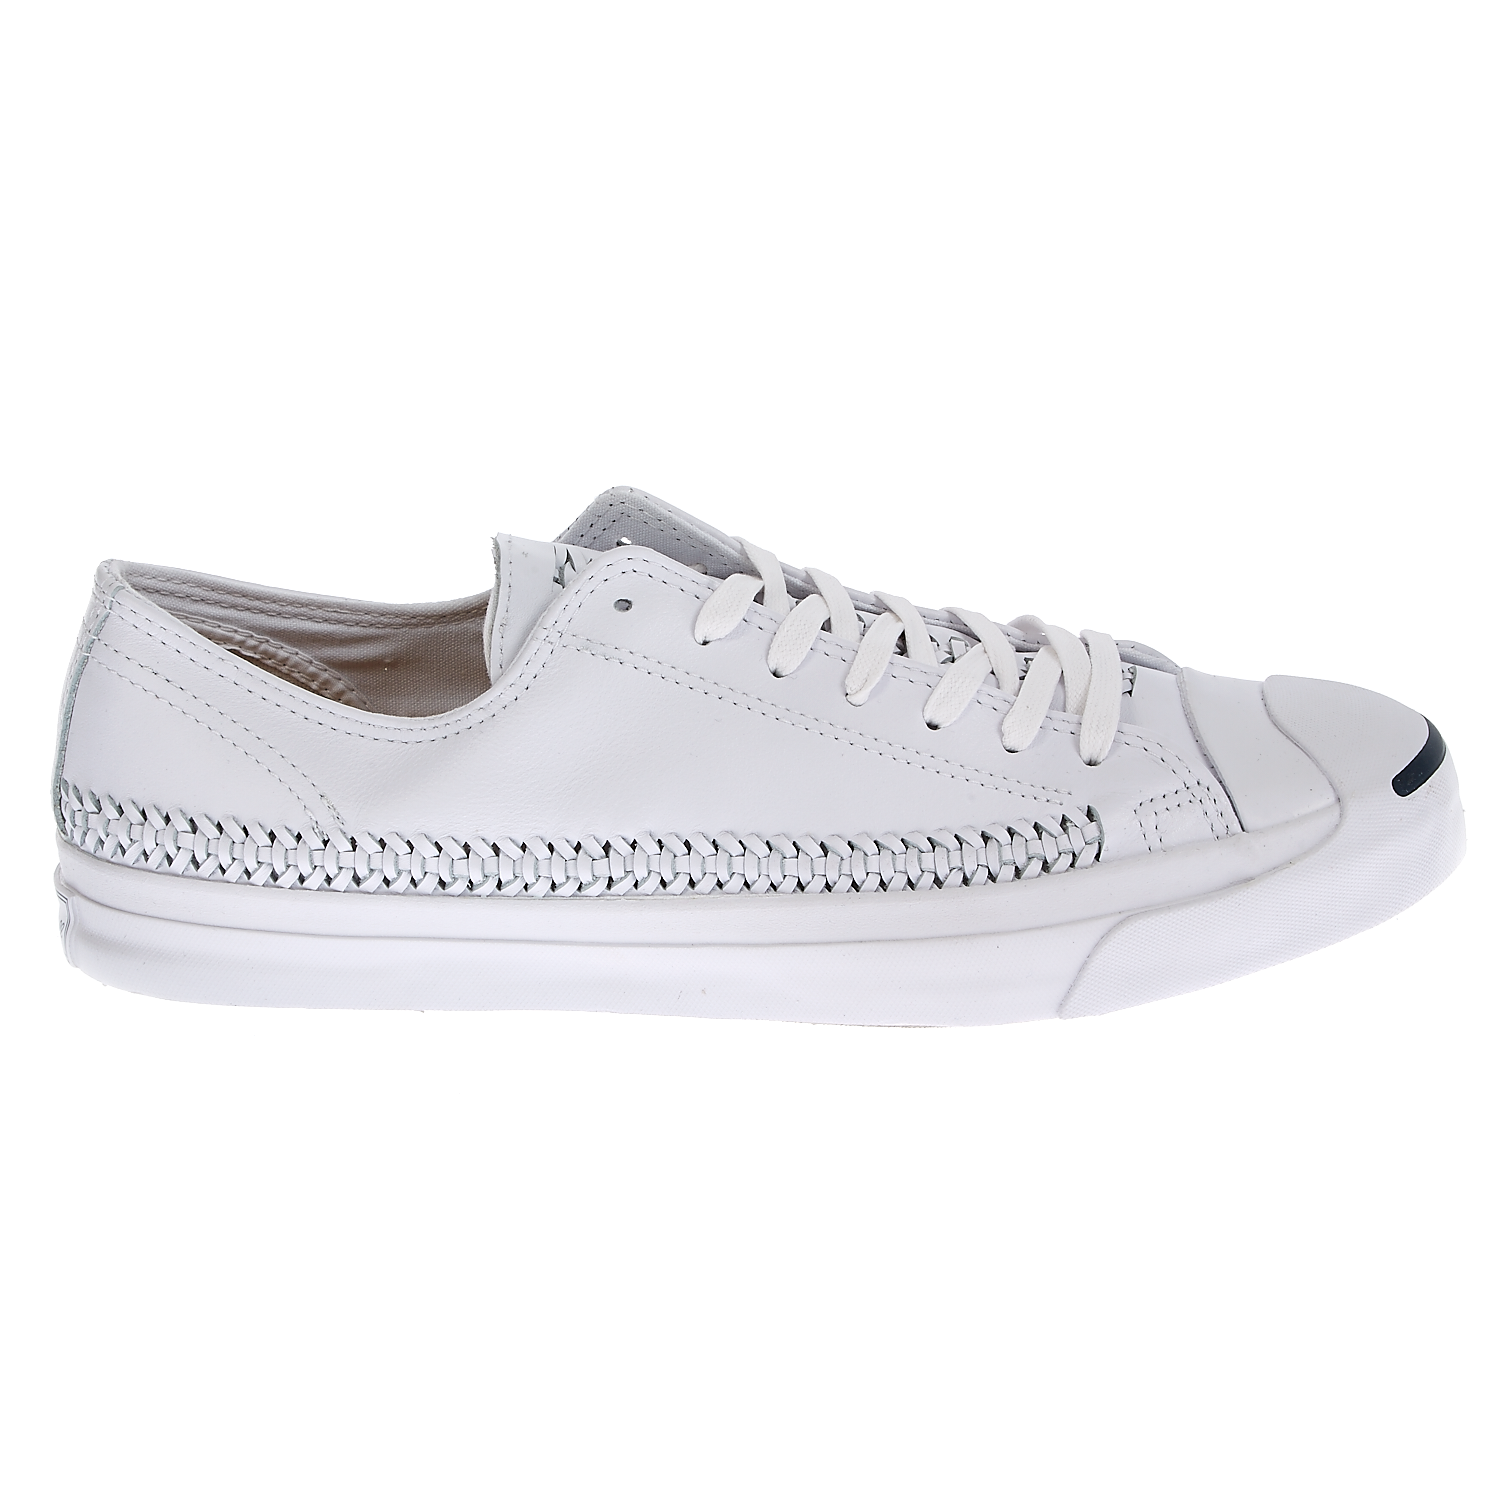 CONVERSE - Unisex παπούτσια Jack Purcell Jack Woven λευκά